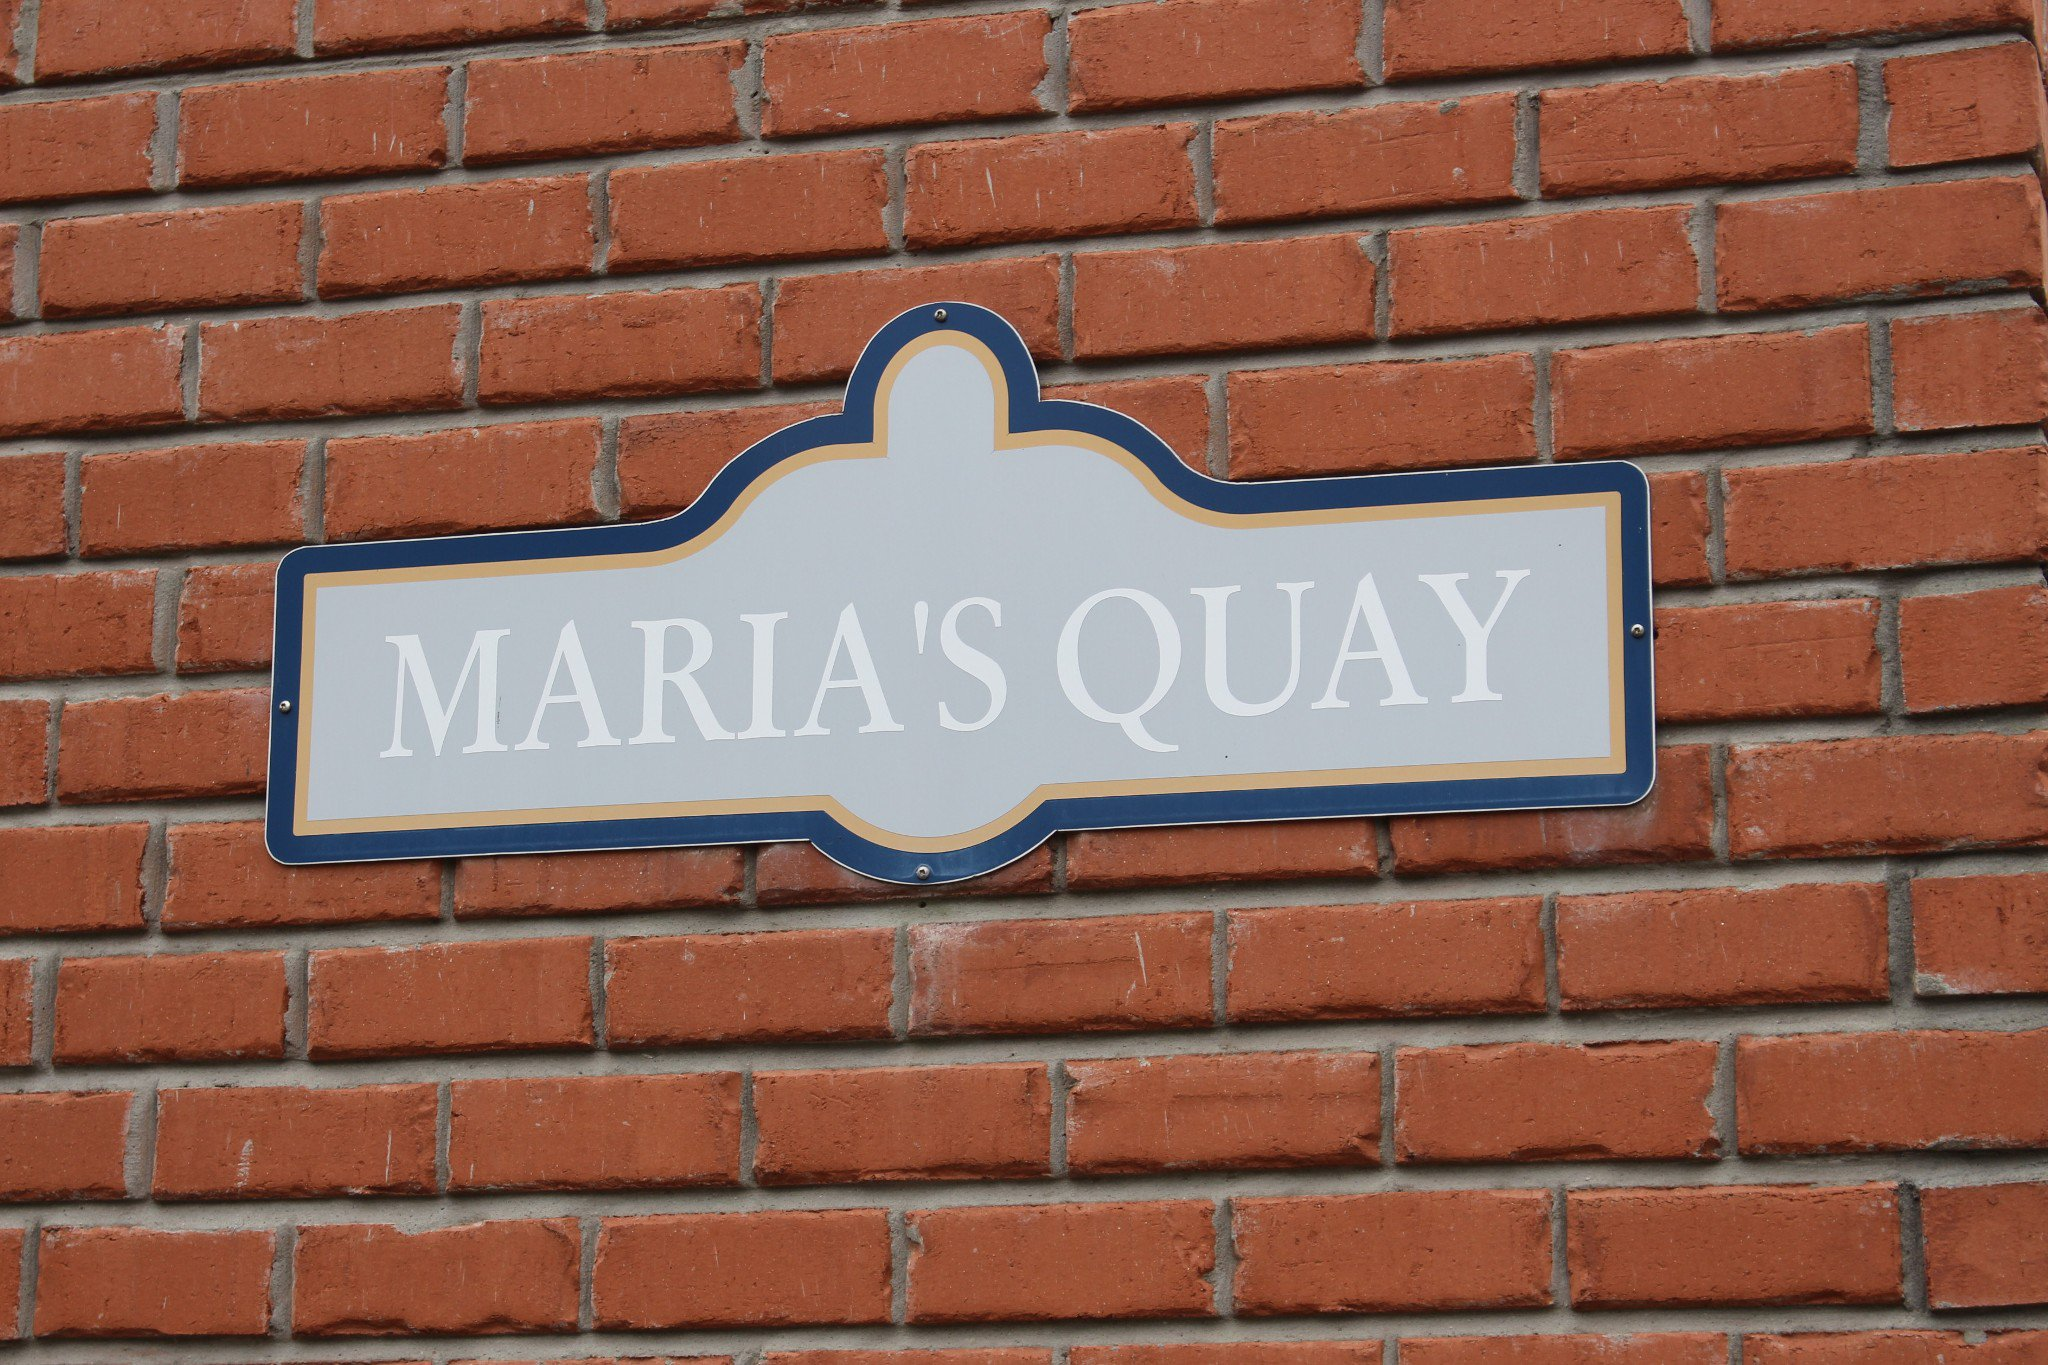 Photo 28: Photos: 102 Maria's Quay in Cobourg: Residential Attached for sale : MLS®# 230864